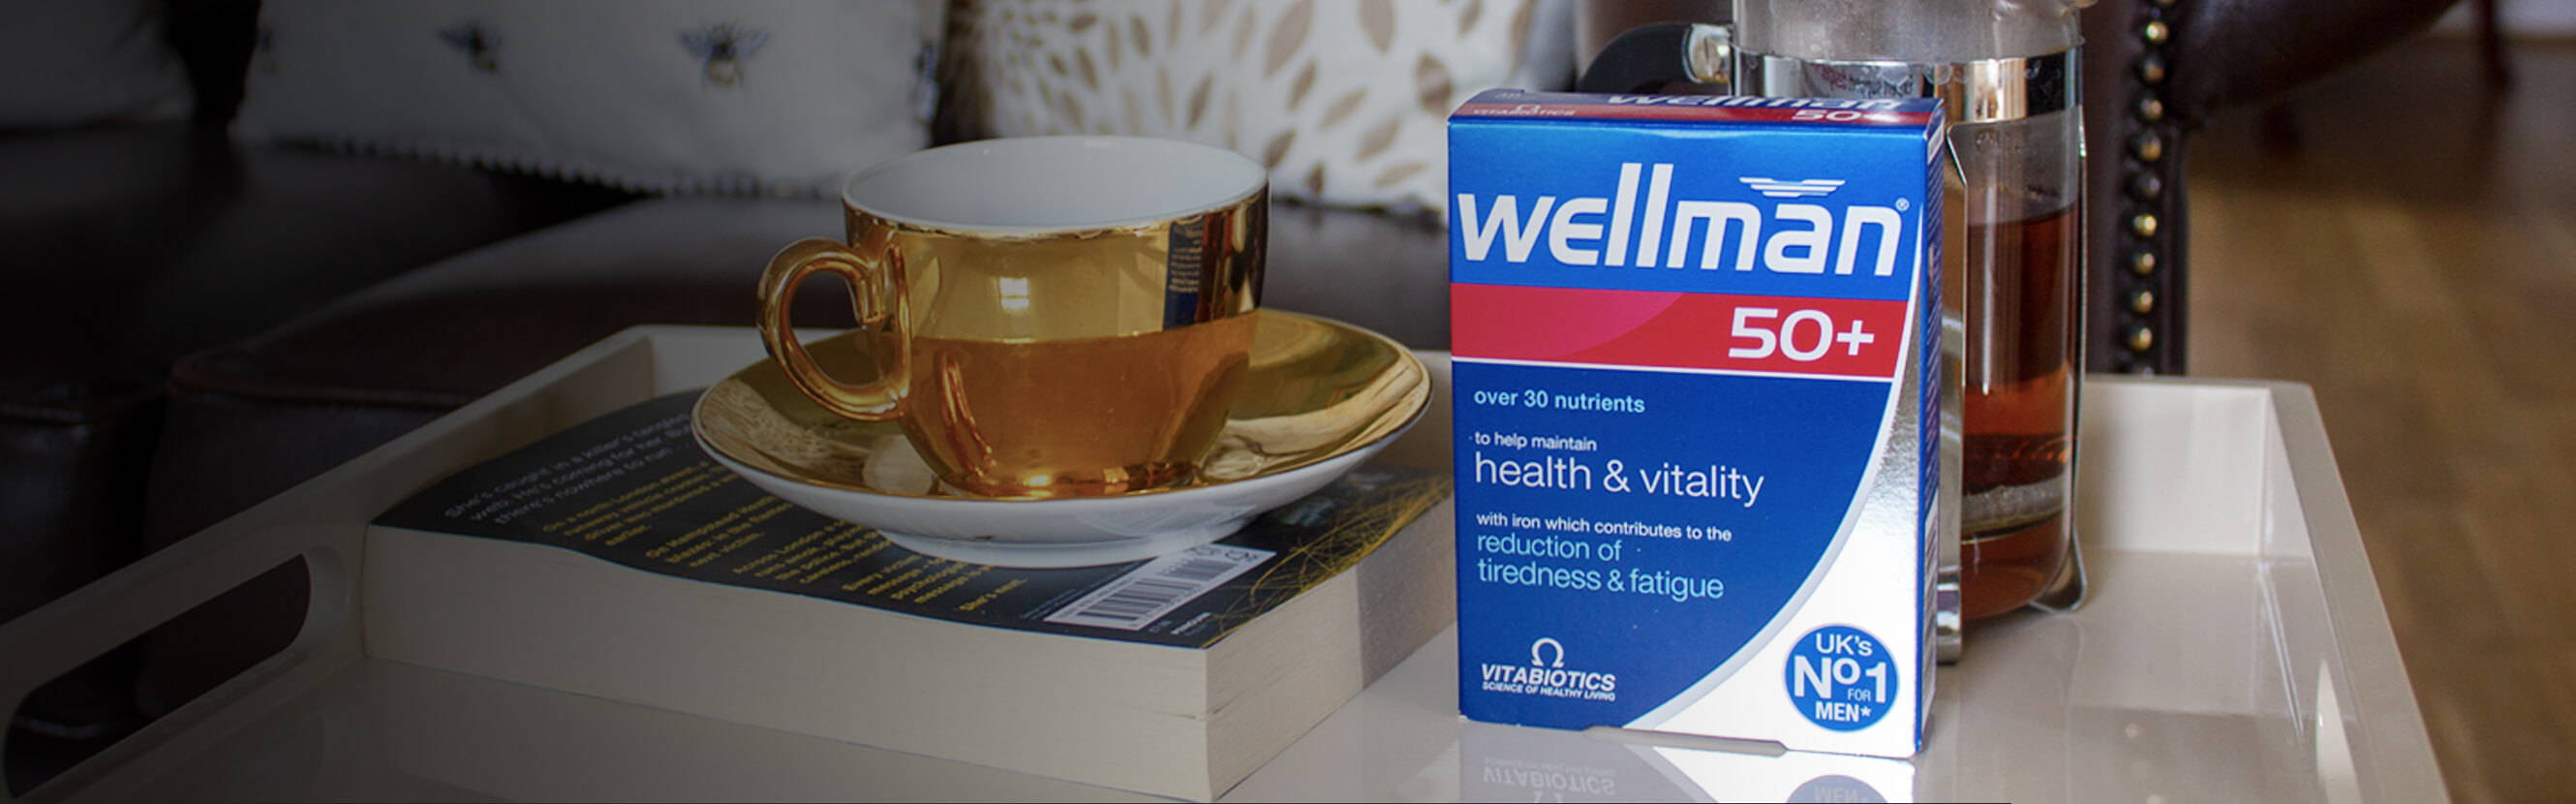 Your prime is wherever you want it to be. But, as you get older, your body deserves the right support to maintain an active lifestyle. With Wellman 50+, we've brought together the most essential nutrients for health, vitality and wellbeing – and added essential minerals like Iron which is needed for the reduction of tiredness and fatigue.